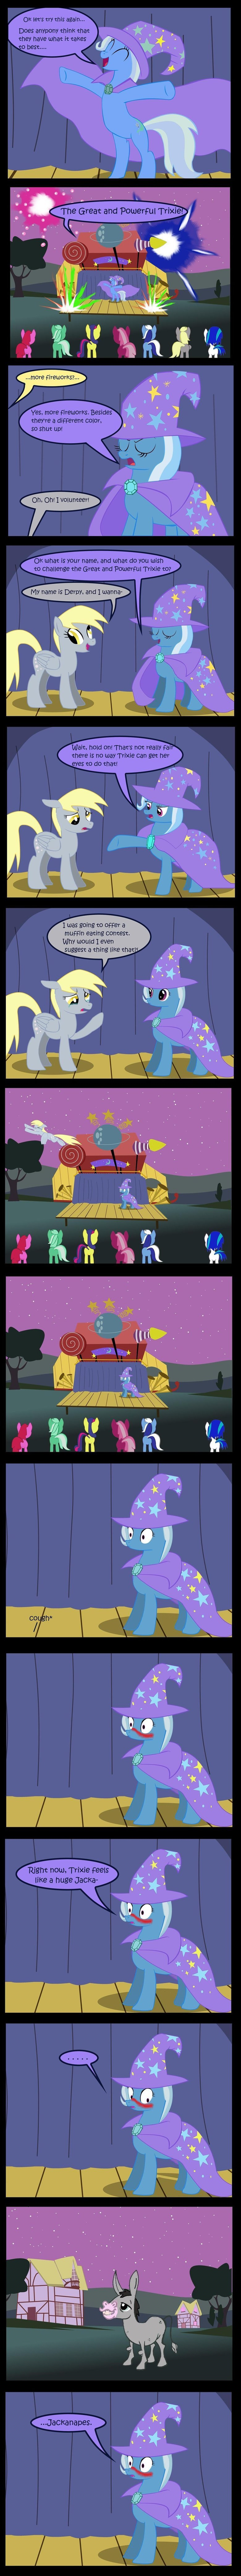 Trixie vs. Derpy. Made by Evil-DeC0Y on deviantart... its ok derpy the doctor is here for you